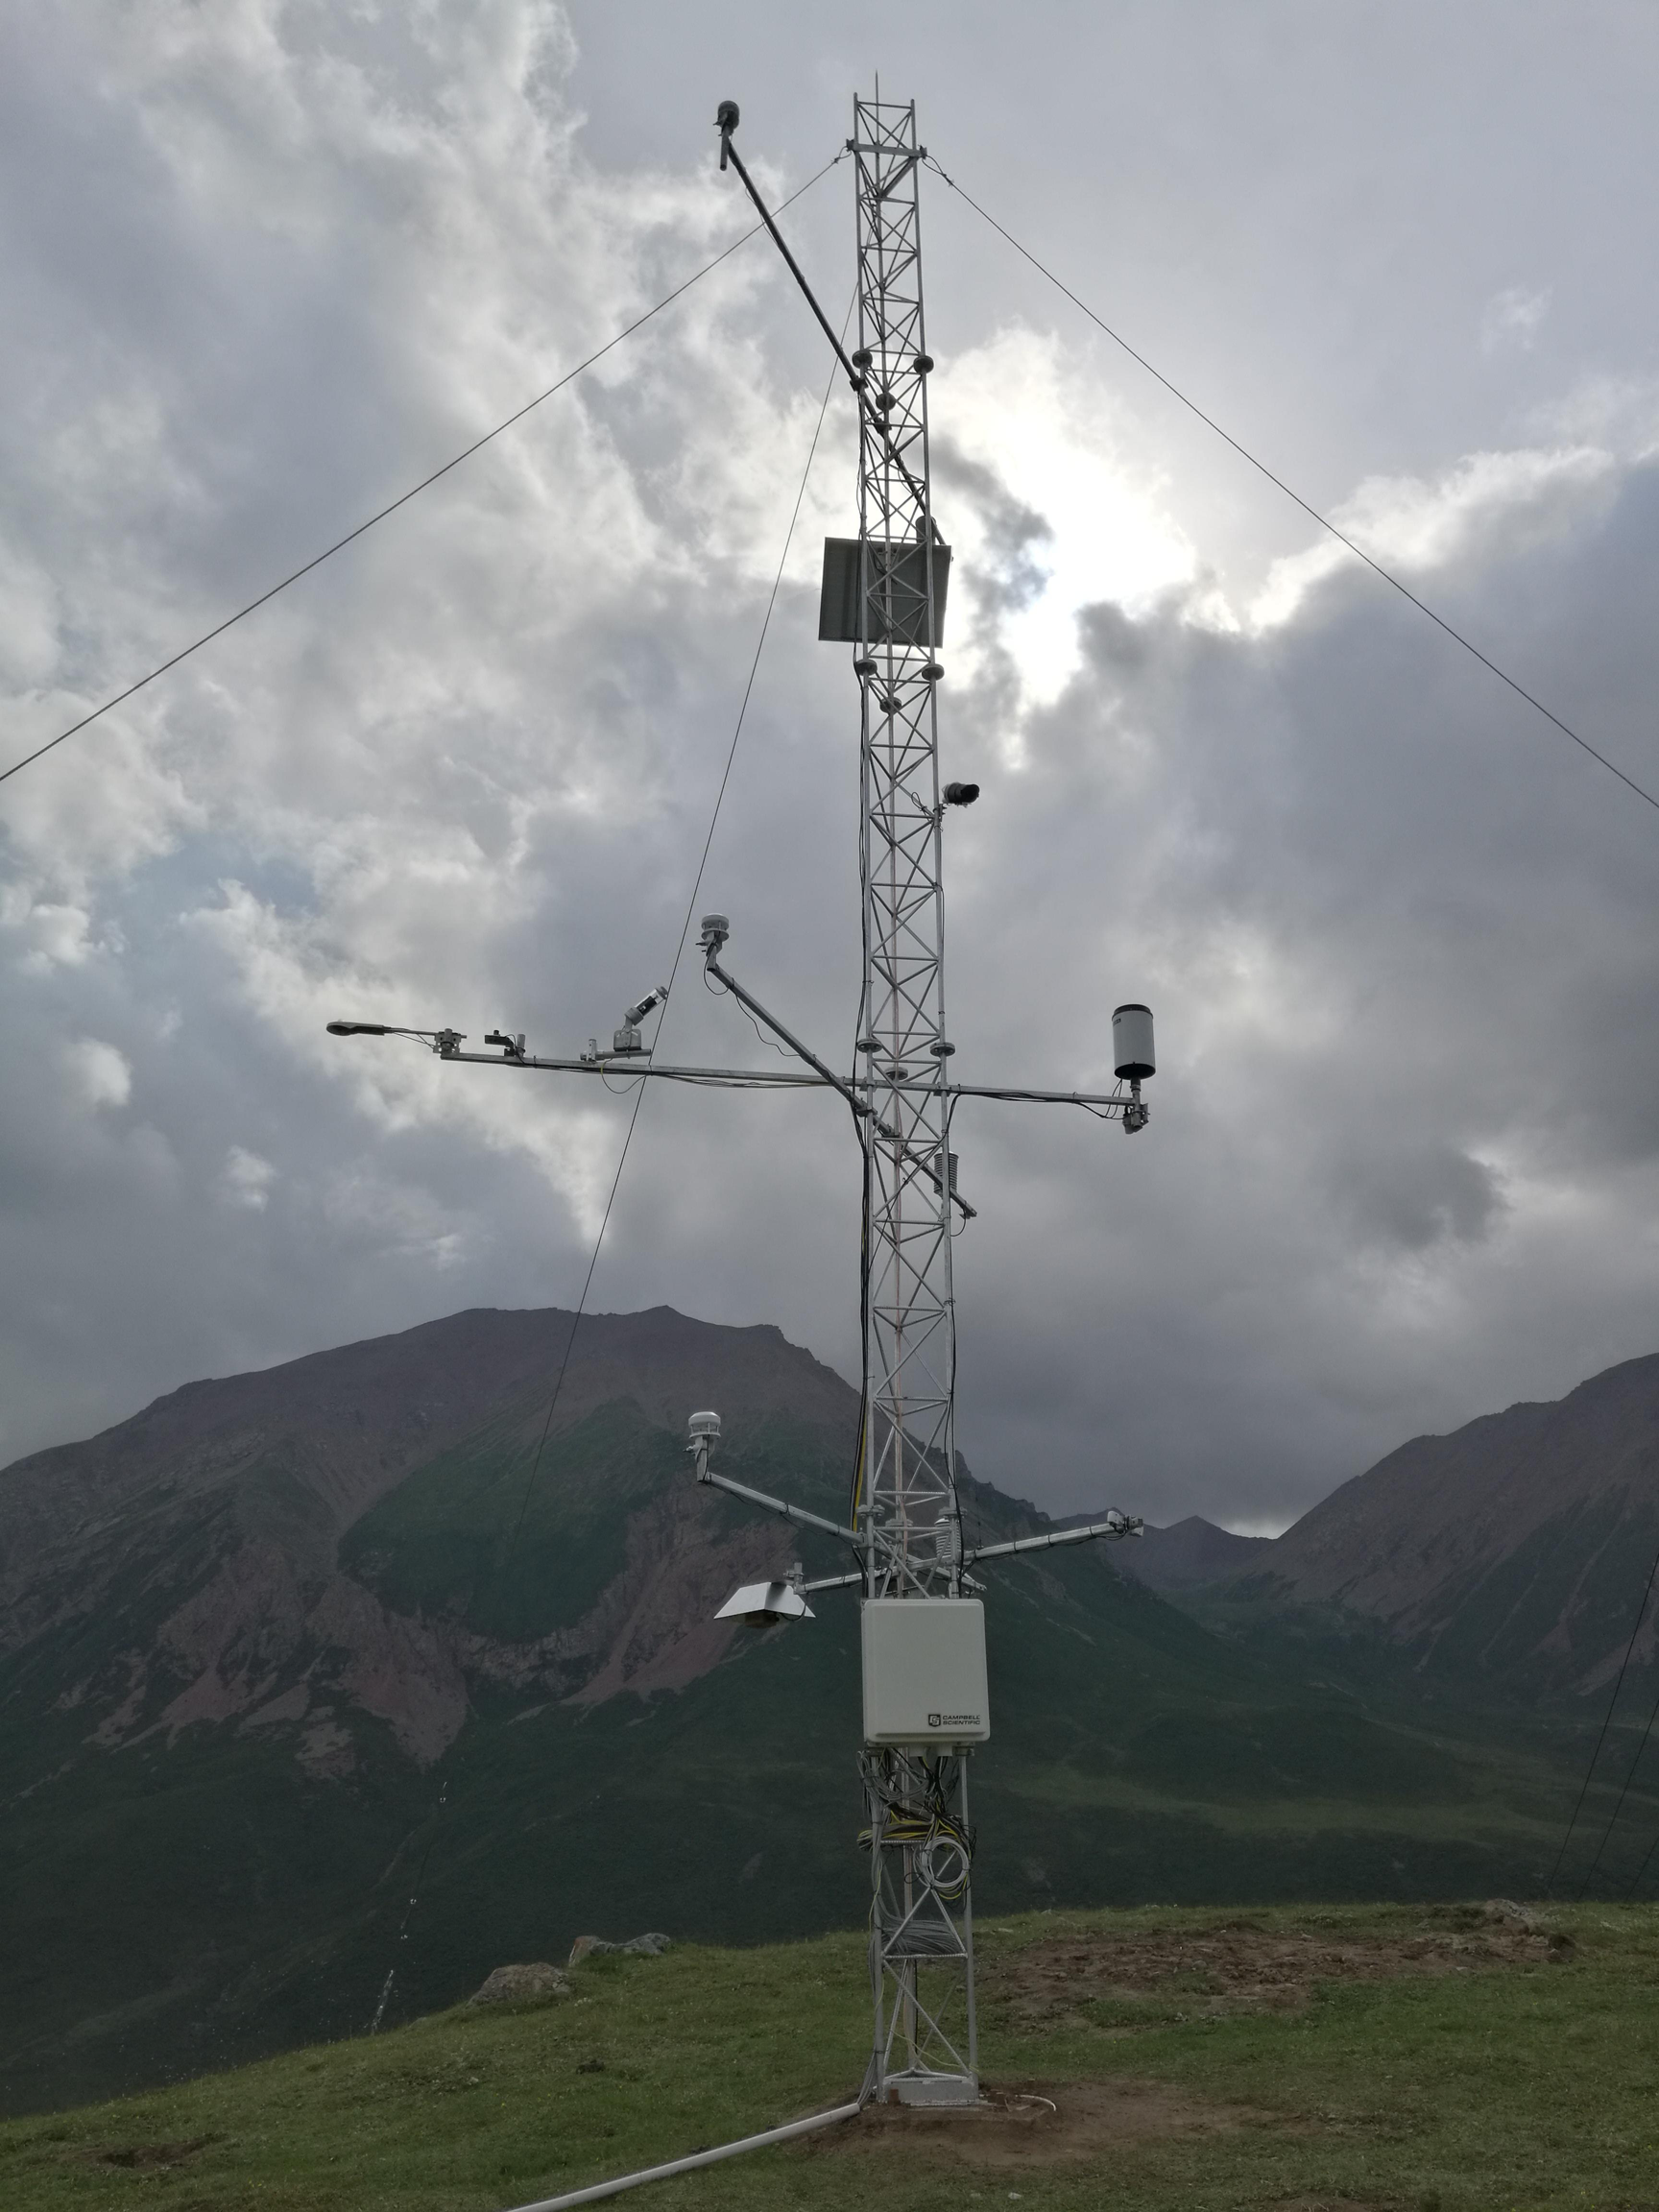 Qilian Mountains integrated observatory network: Dataset of Shiyanghe integrated observatory network (Phenology camera observation data set of Xiyinghe Station, 2019)